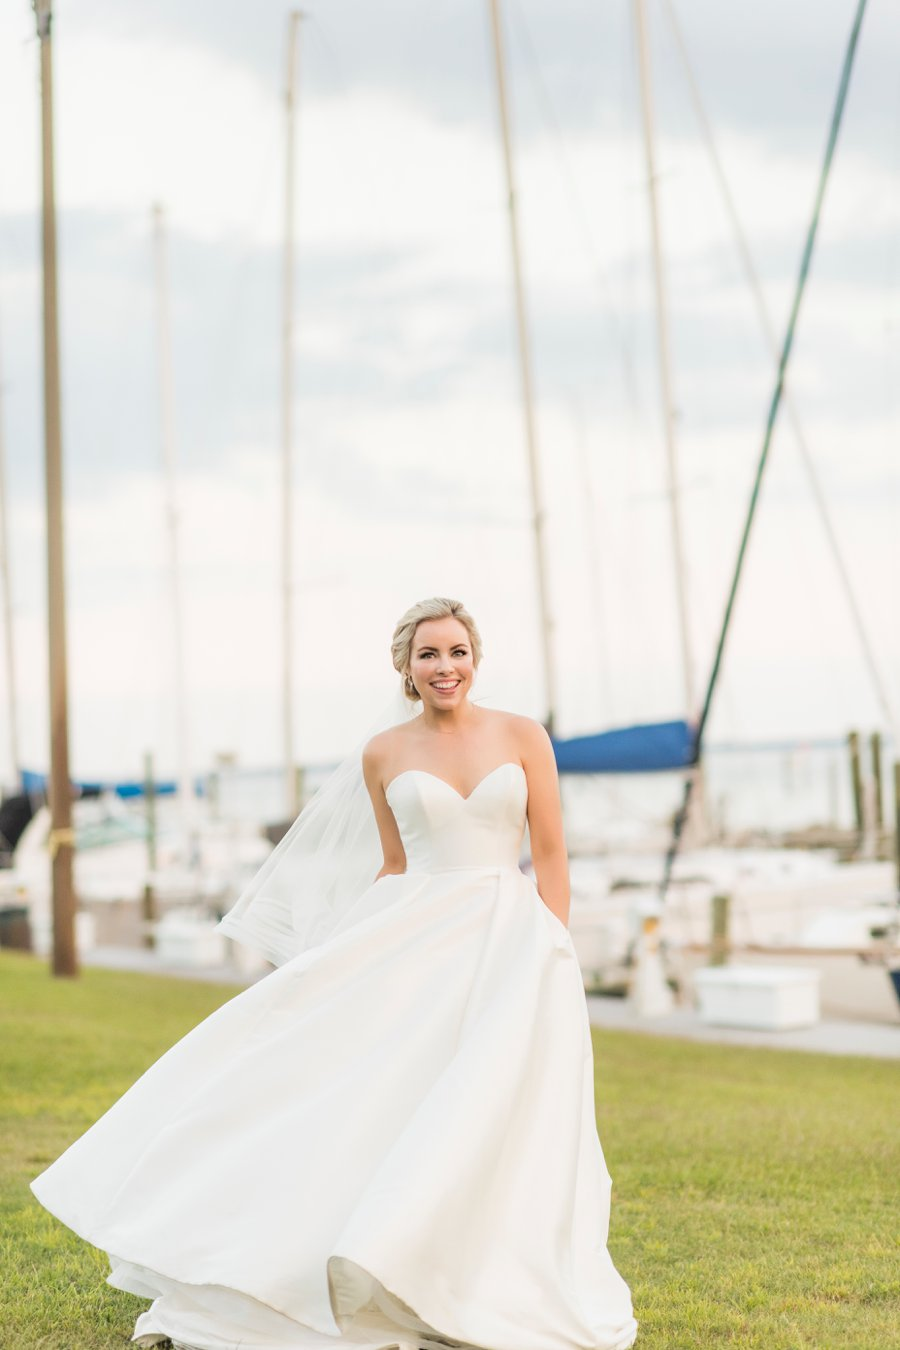 A Preppy, Classic Navy & White Nautical Wedding via TheELD.com